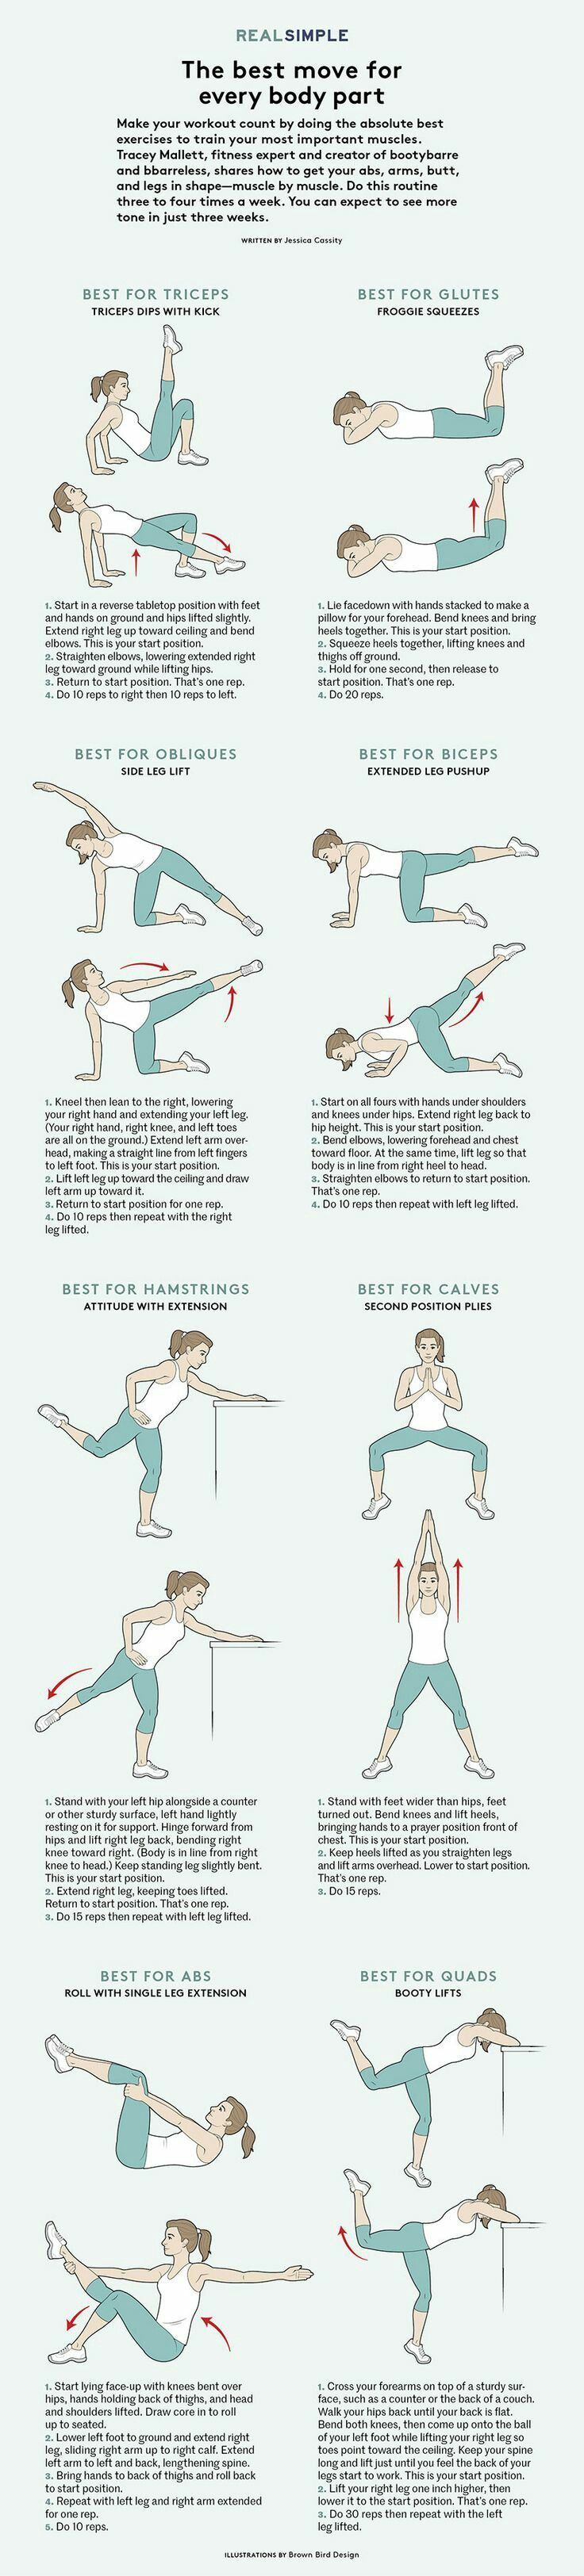 the best move for every body part (fitness)